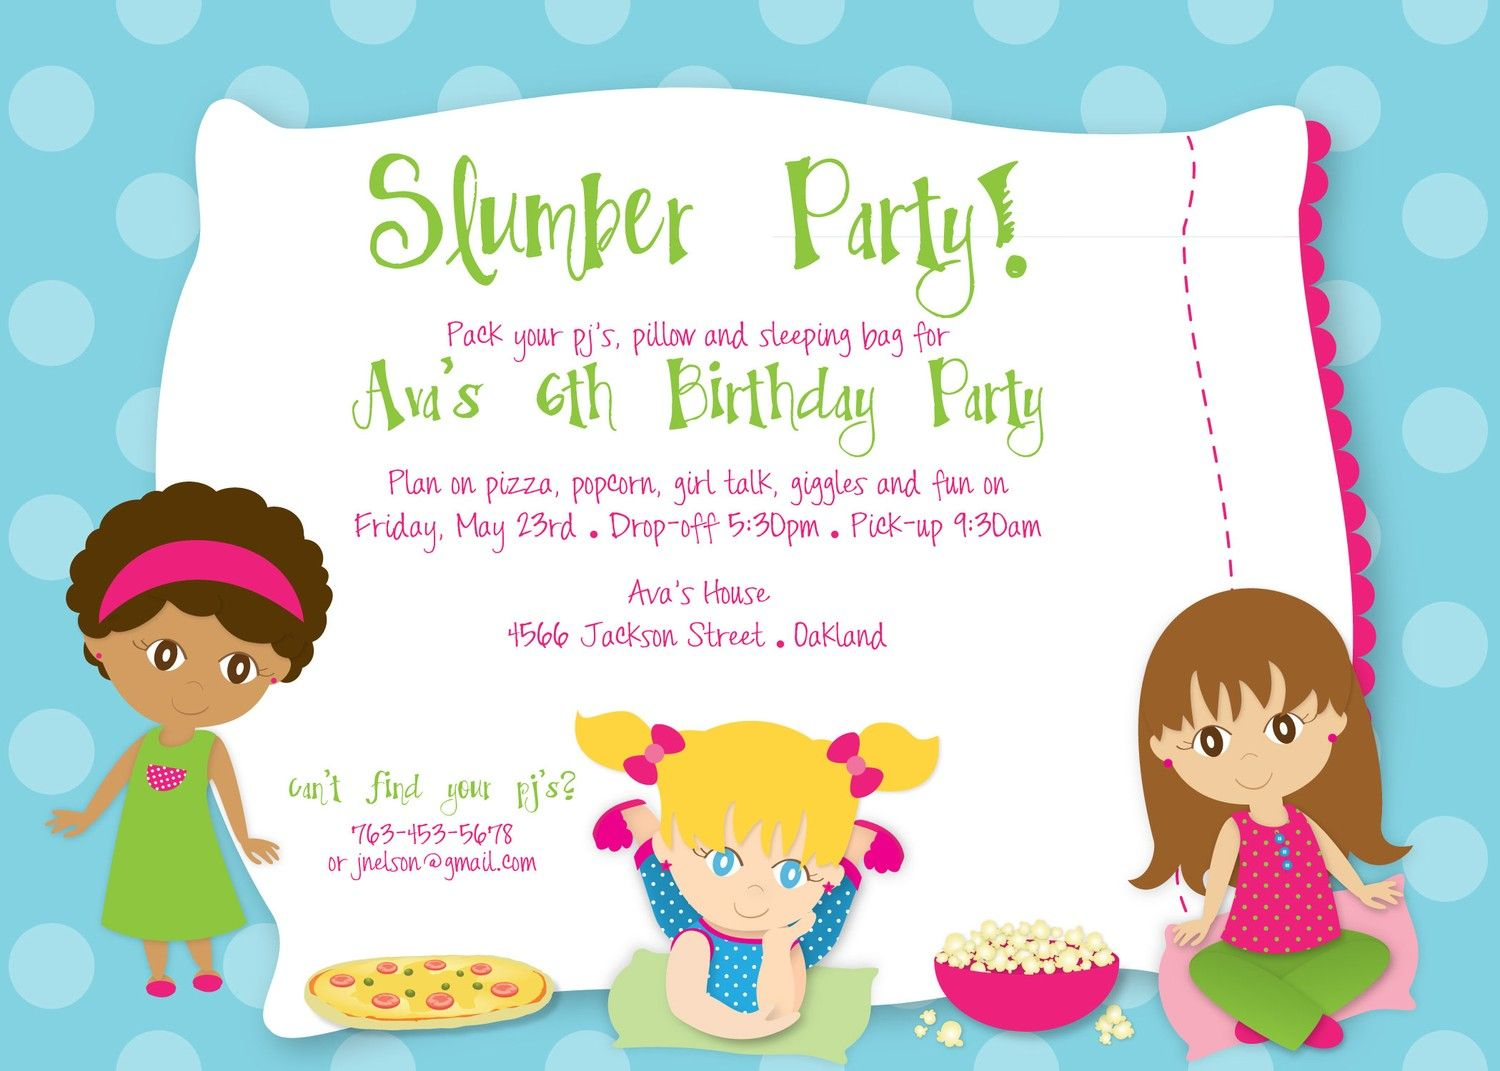 Slumber Party Invitation | Invitation Sample | Pinterest | Slumber ...